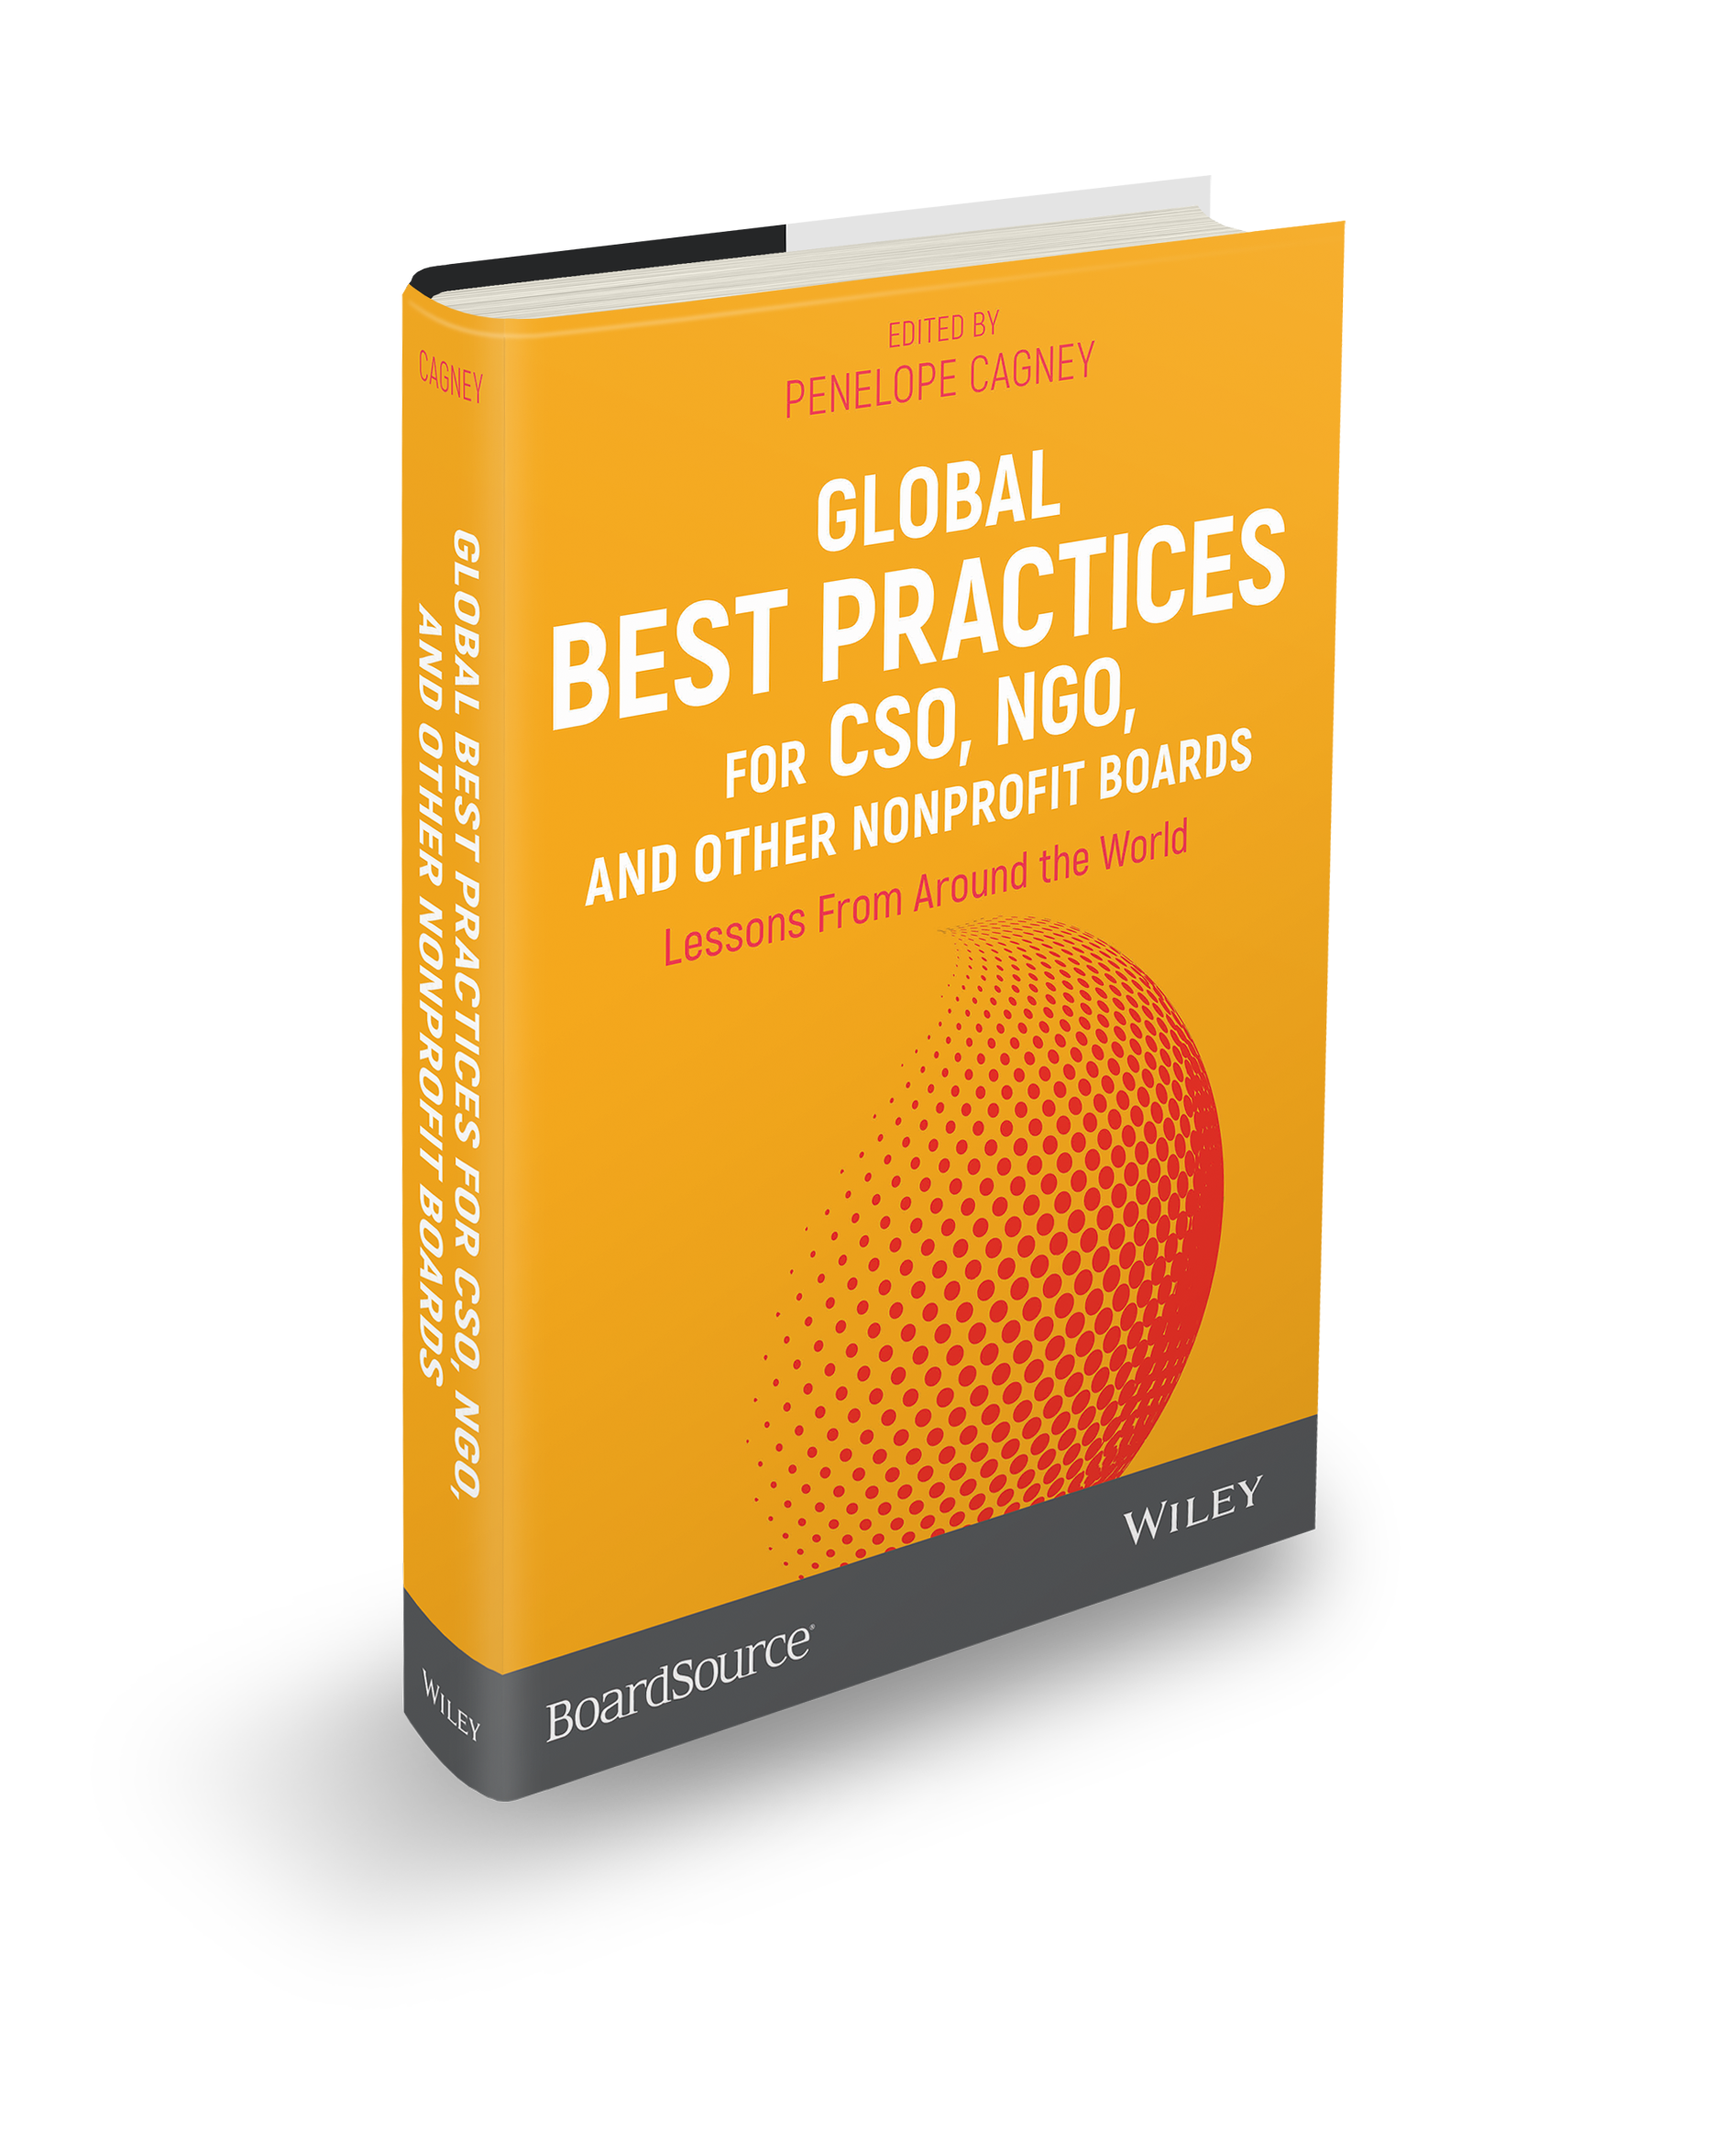 Global-best-practices-cover